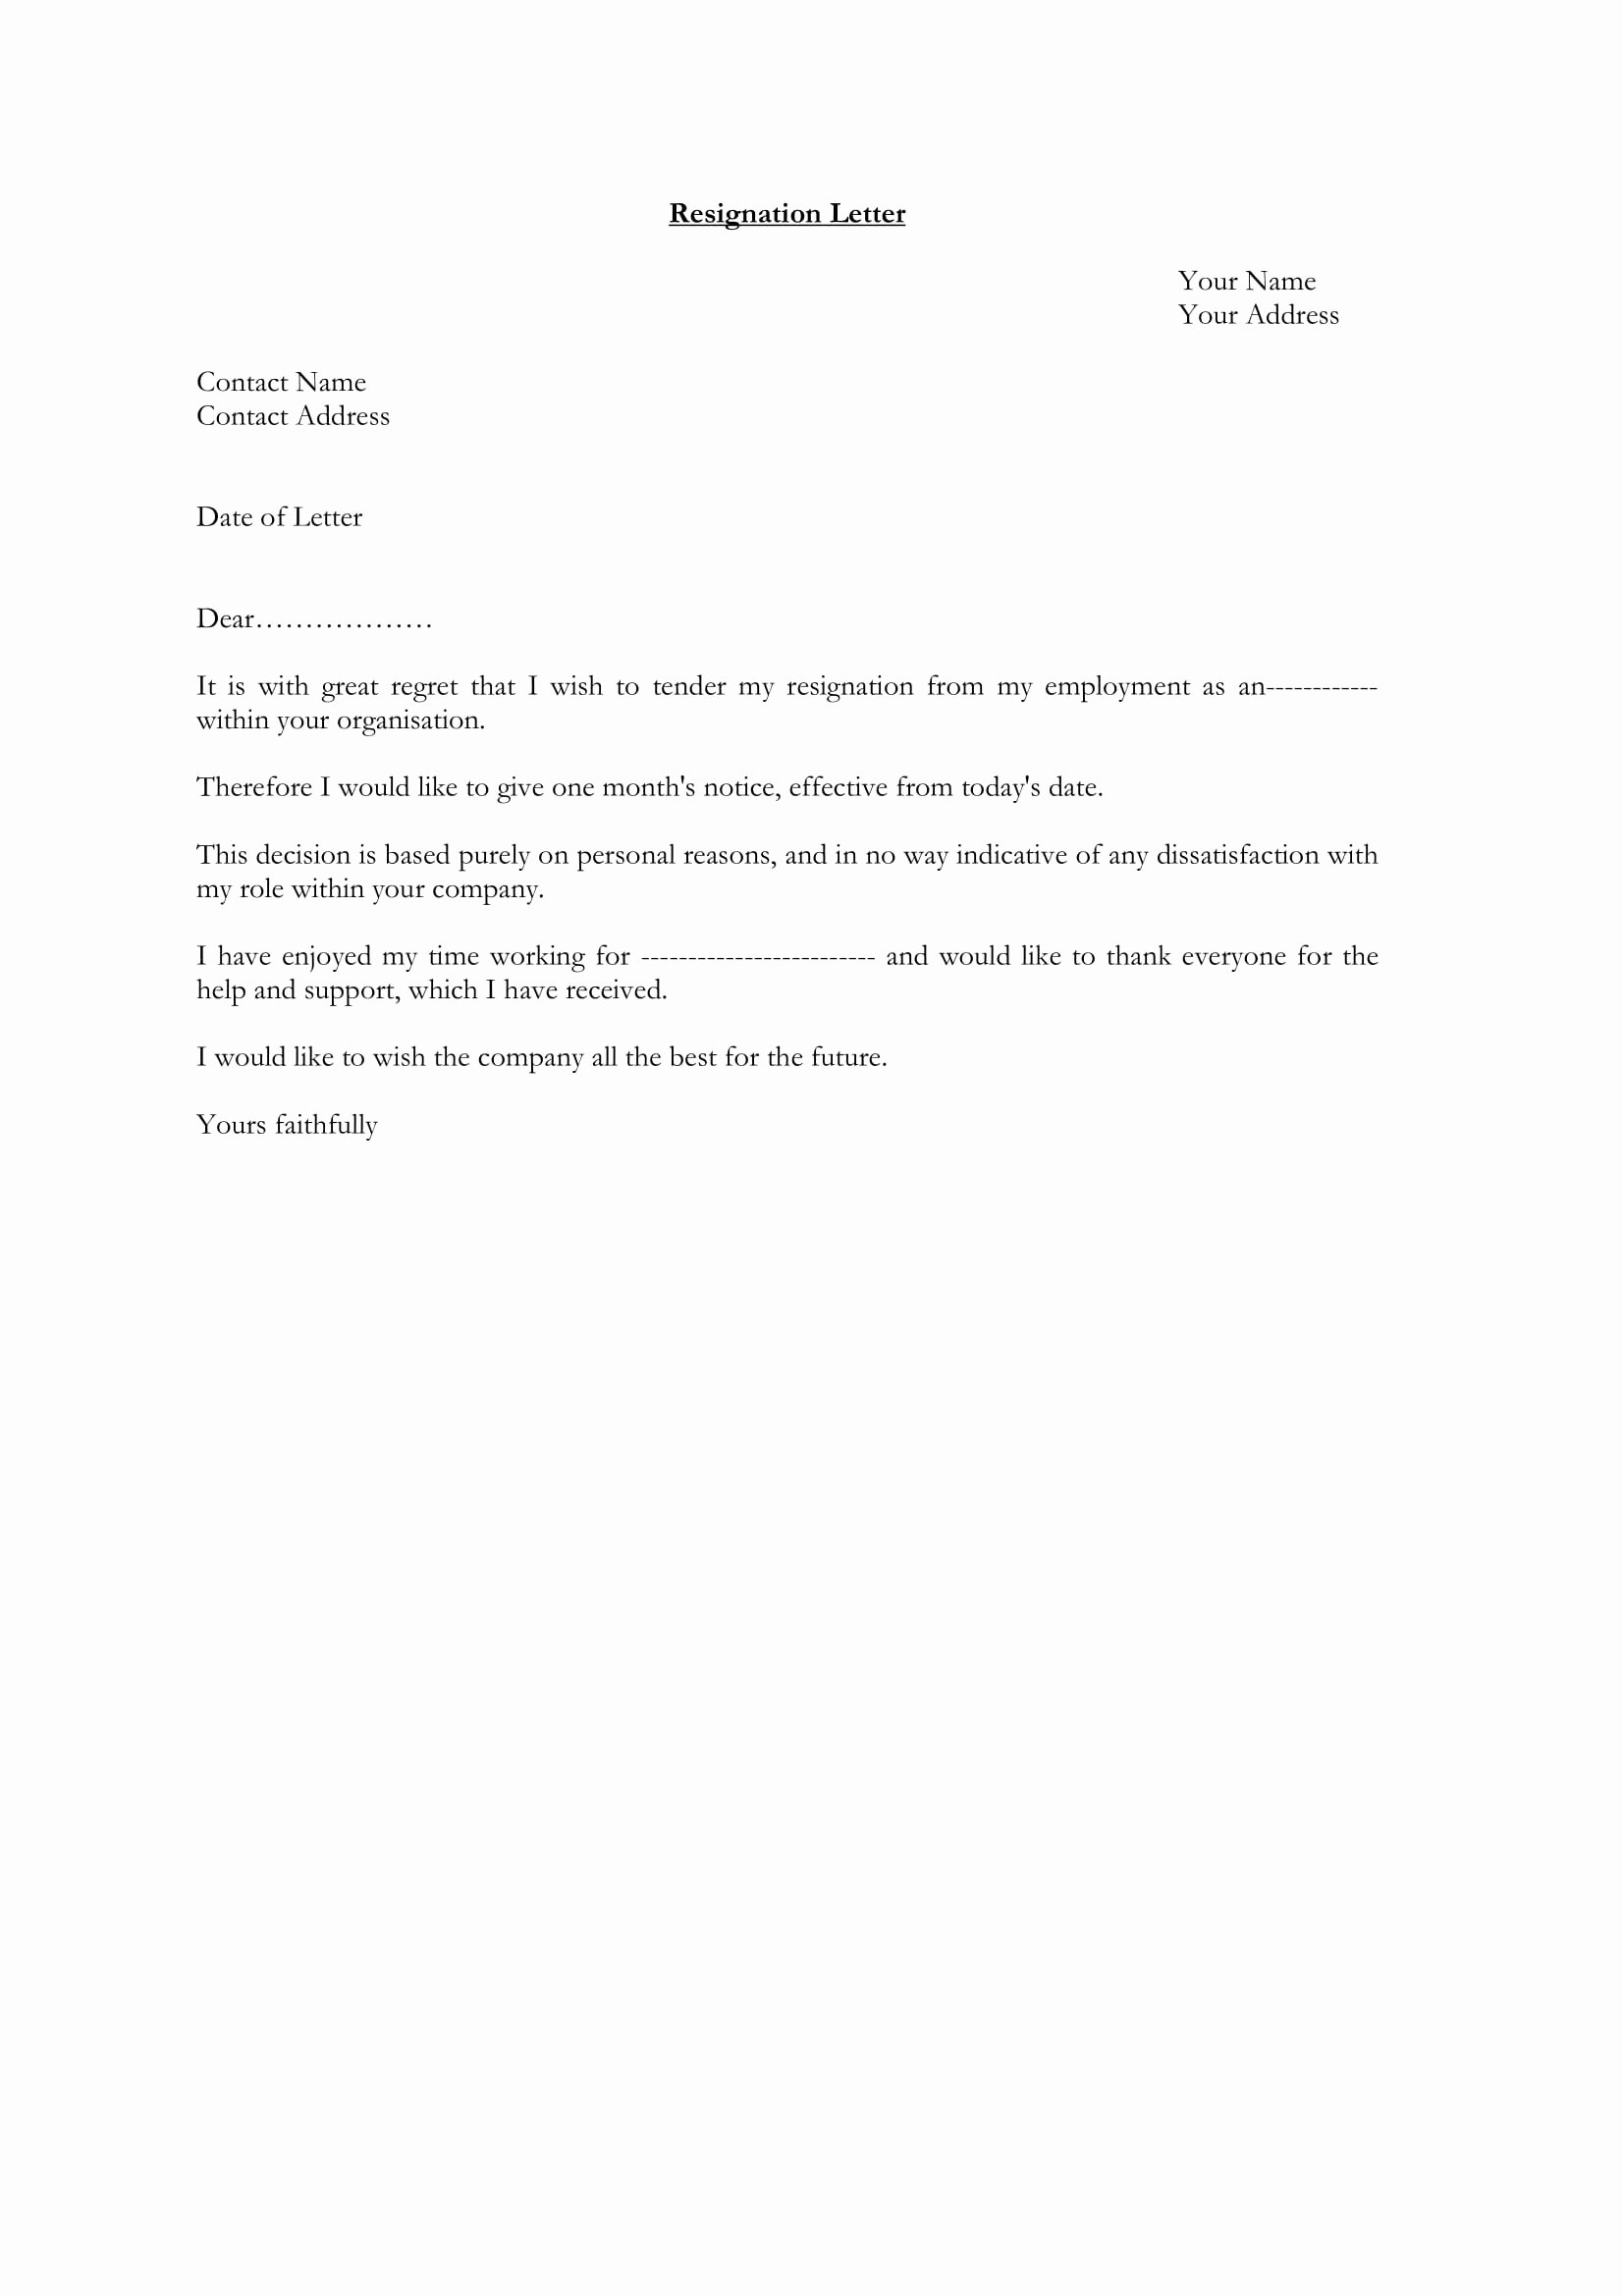 Letter Of Resignation From Job Inspirational 12 Employee Resignation Letter Examples Pdf Word